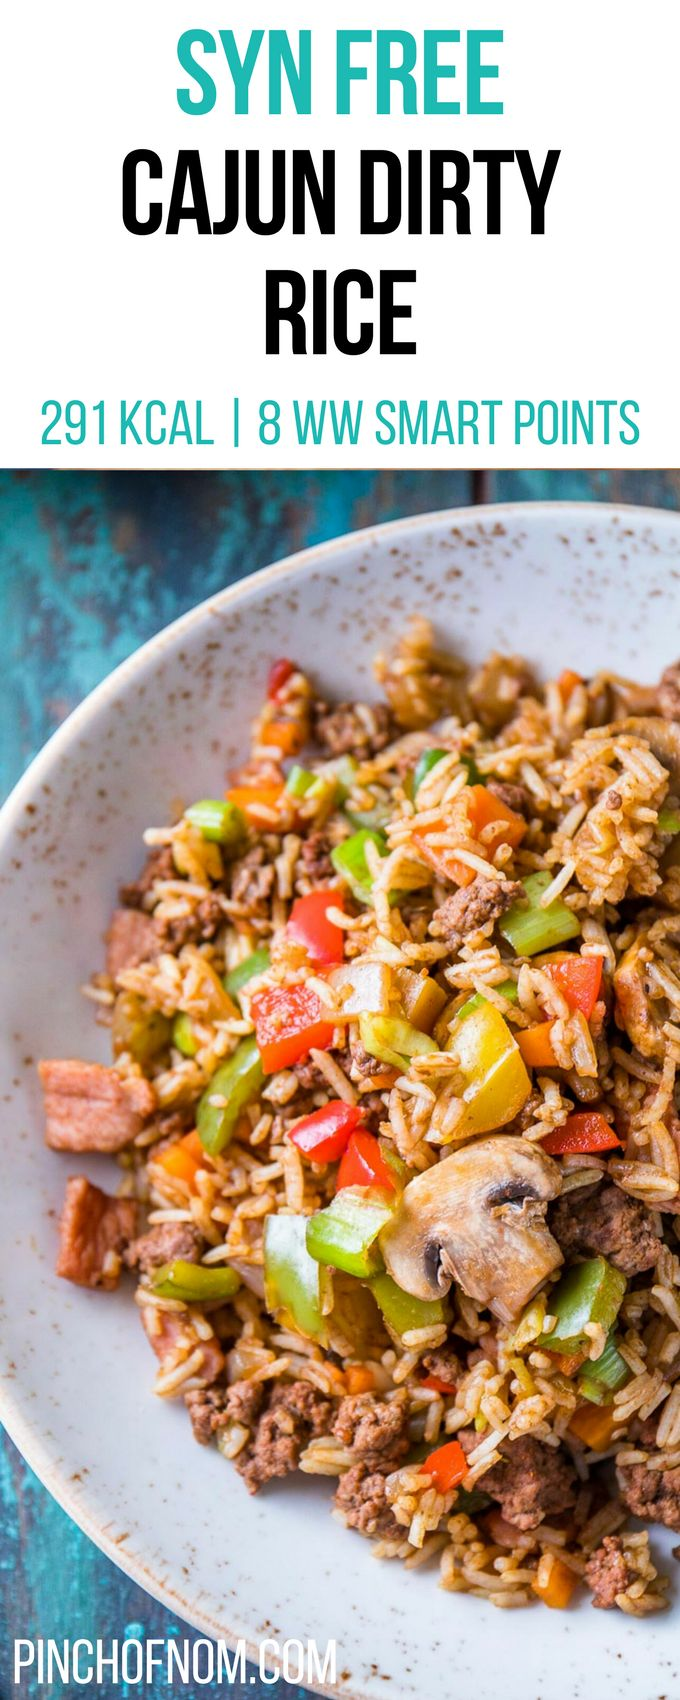 Syn Free Cajun Dirty Rice | Pinch Of Nom Slimming World Recipes    291 kcal | Syn Free | 8 Weight Watchers Smart Points